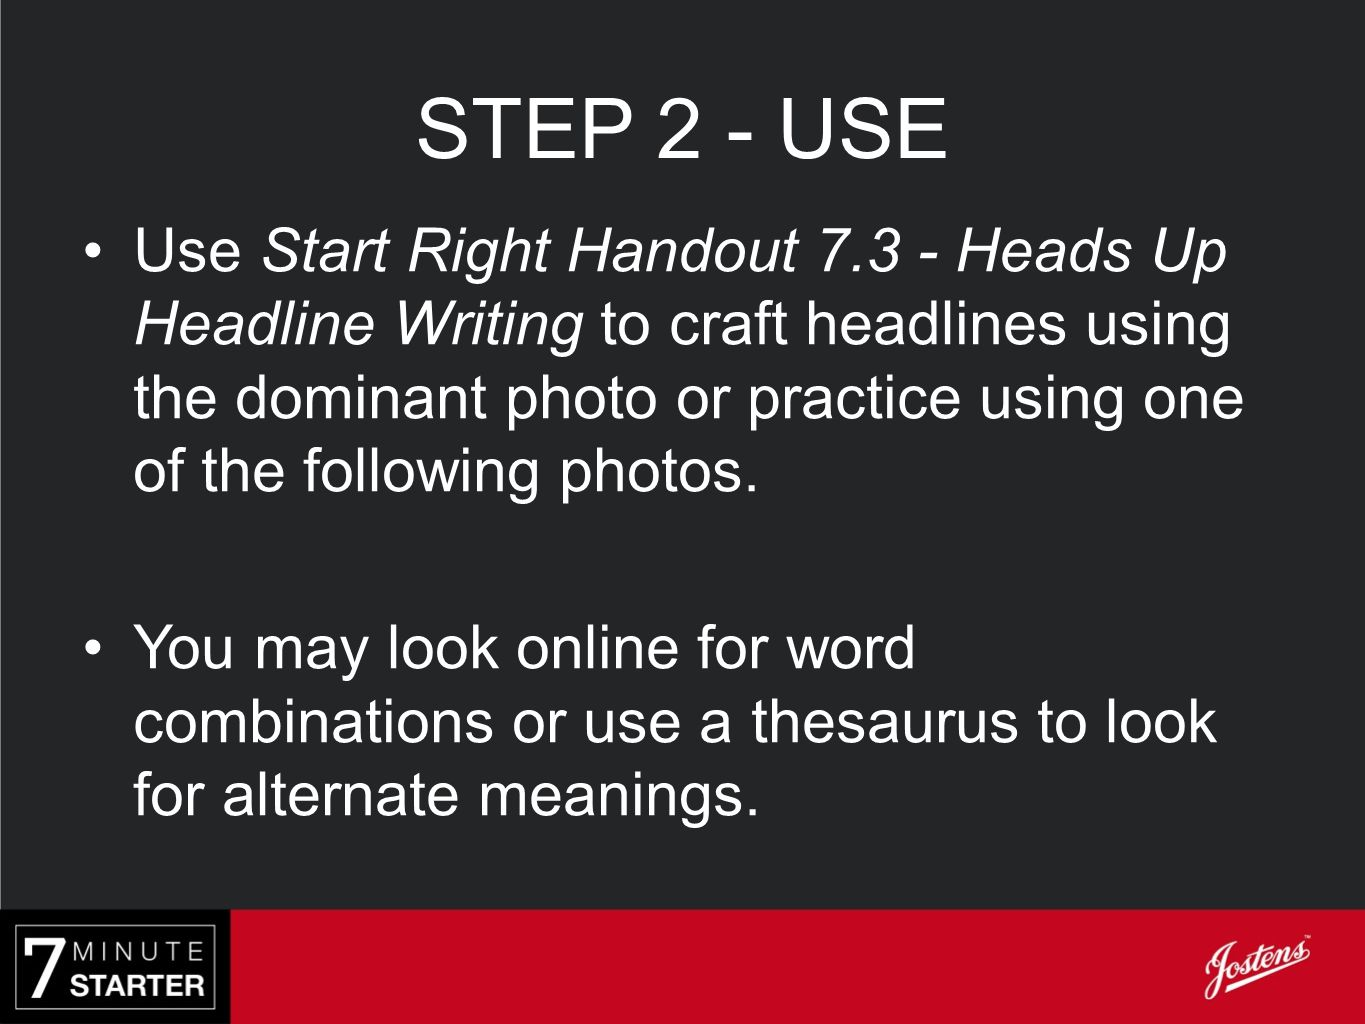 STEP 2 - USE Use Start Right Handout 7.3 - Heads Up Headline Writing to craft headlines using the dominant photo or practice using one of the followin